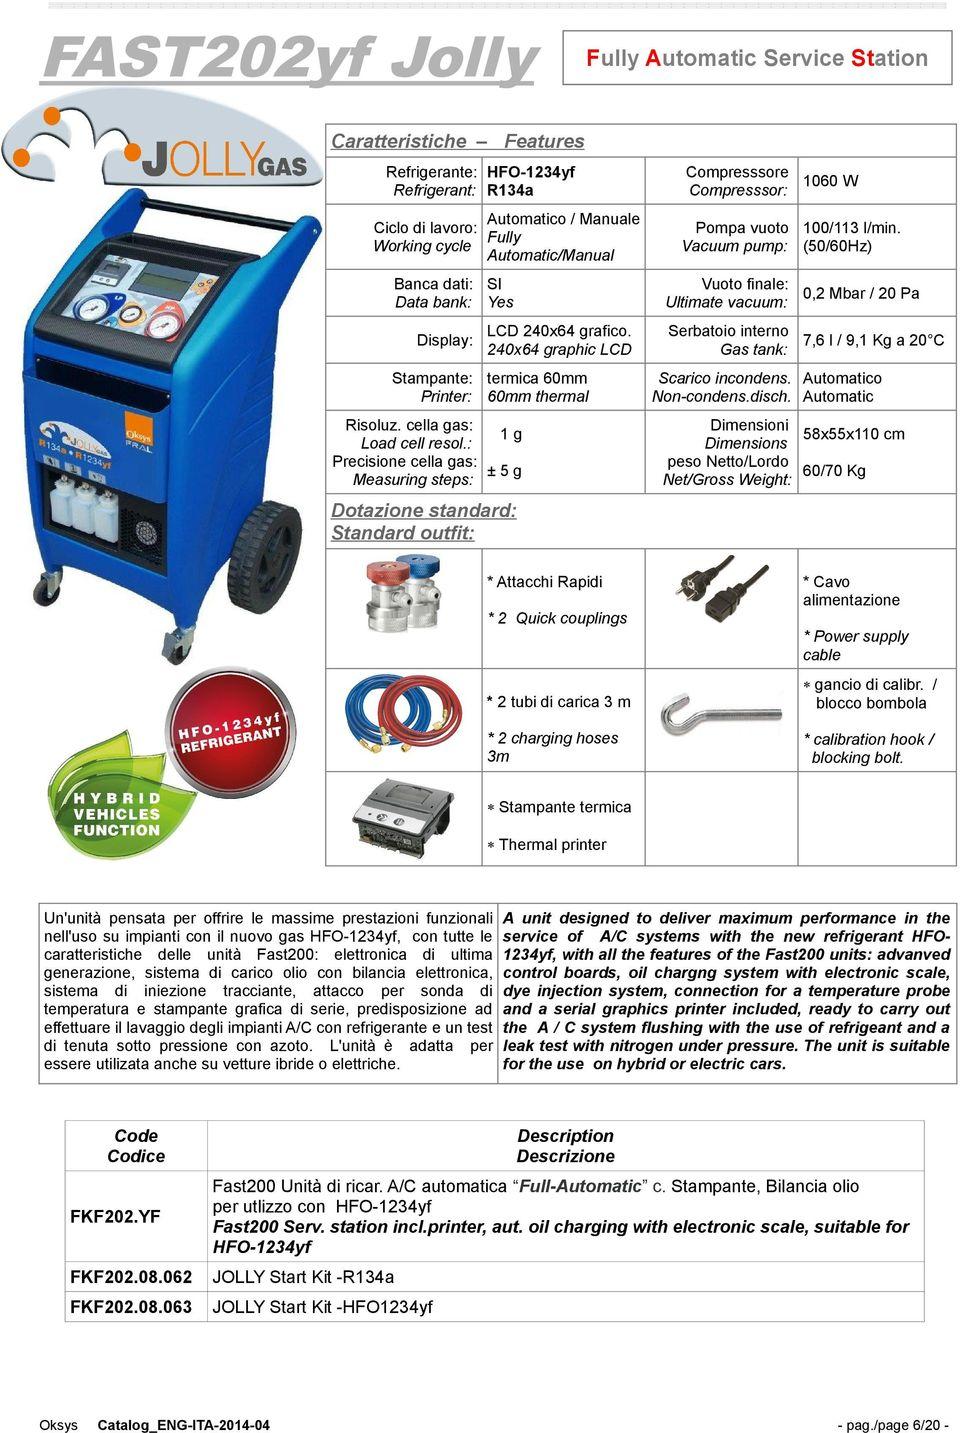 240x64 graphic LCD Stampante: termica 60mm Printer: 60mm thermal Risoluz. cella gas: 1g Load cell resol.